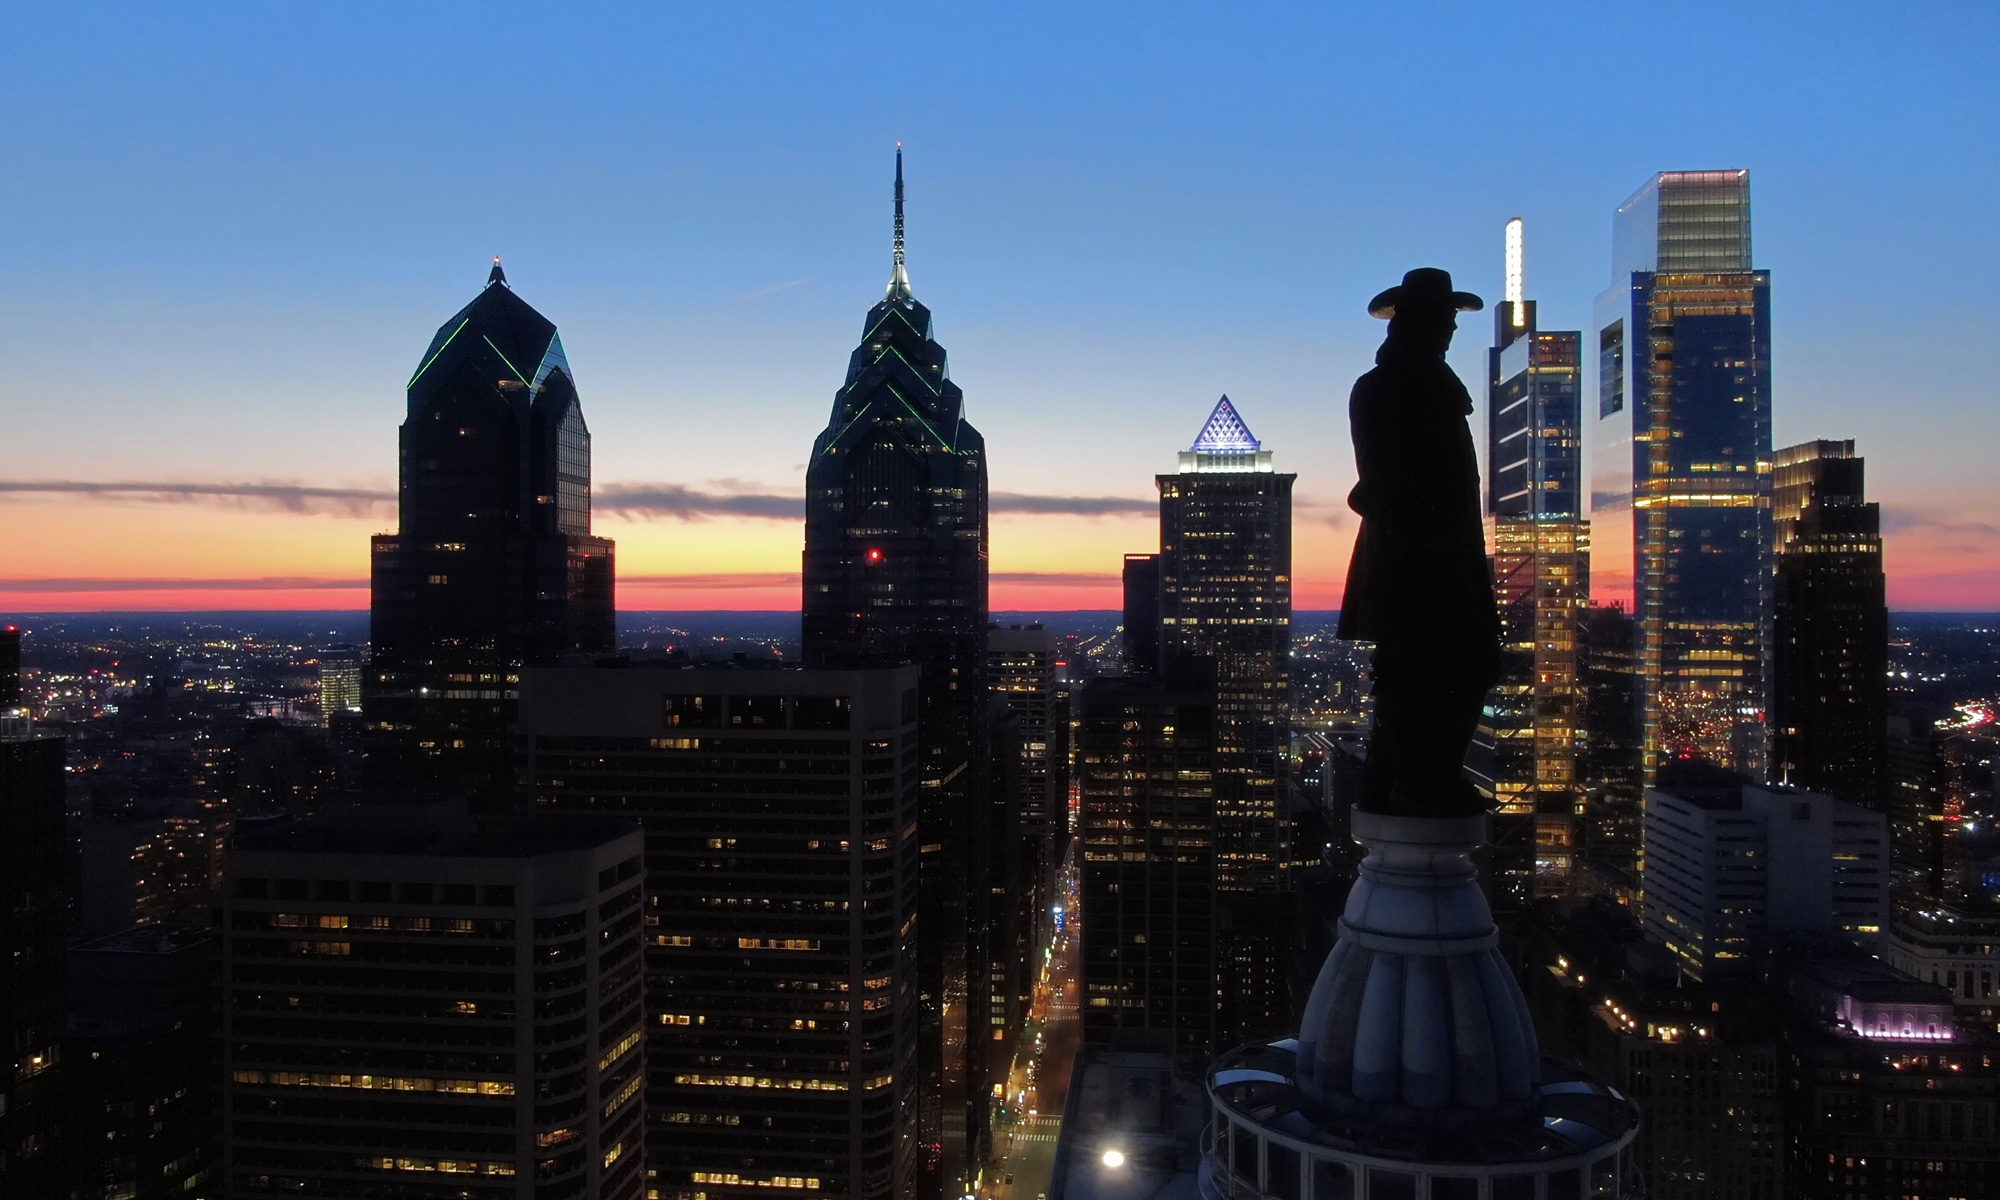 Philadelphia Aerial Photography & Imaging